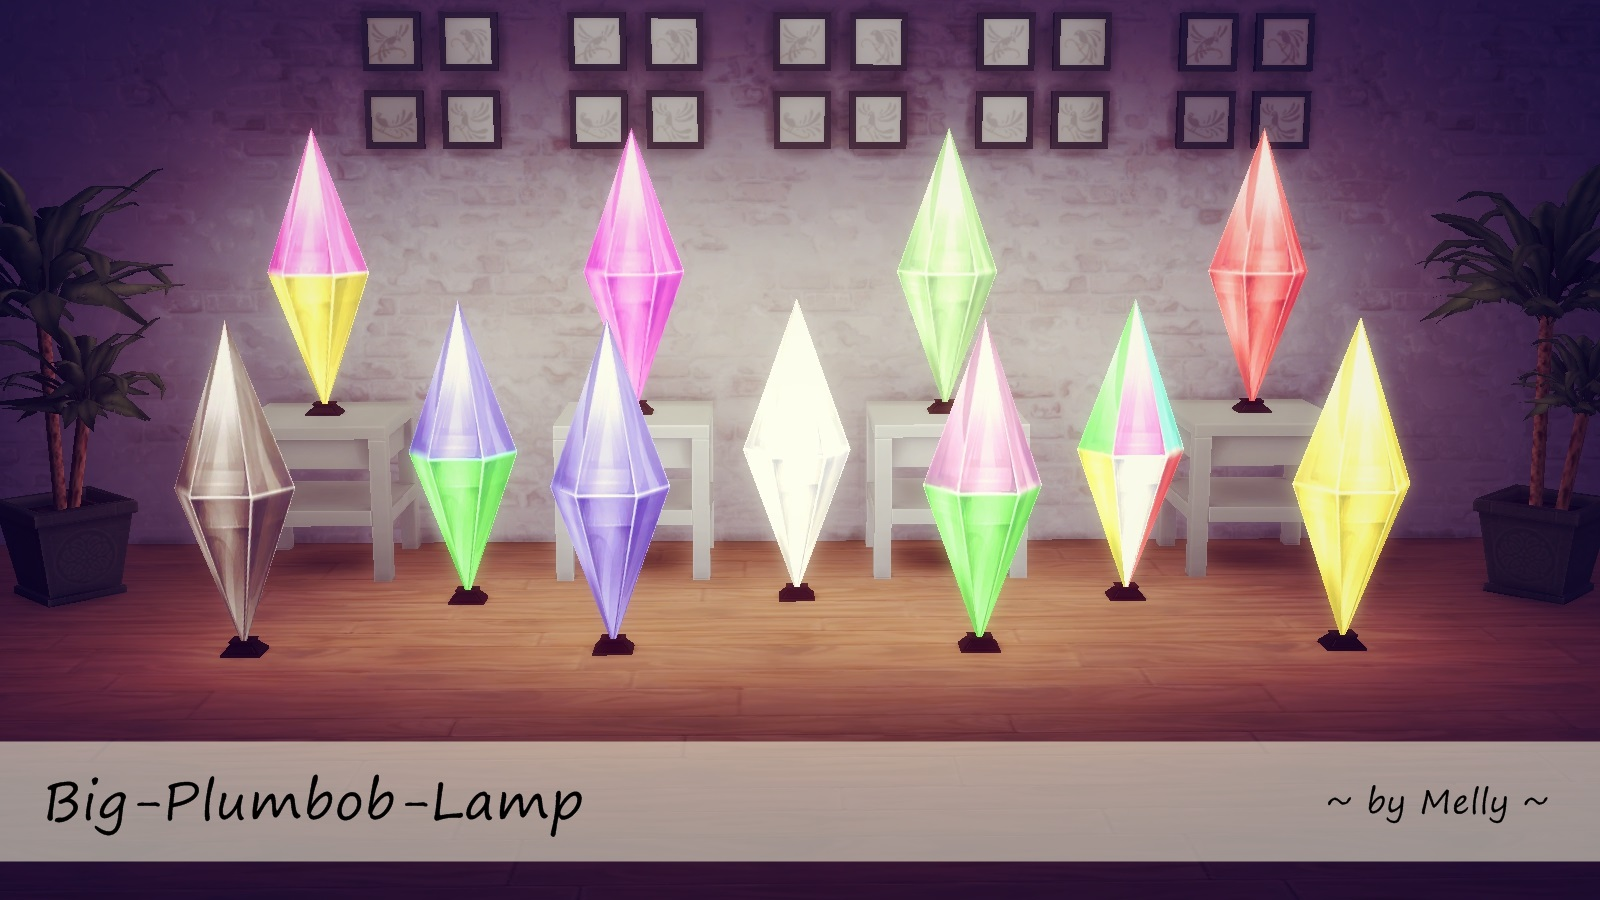 sims 4 cc's - the best: big plumbob lamp by melly, Badezimmer ideen